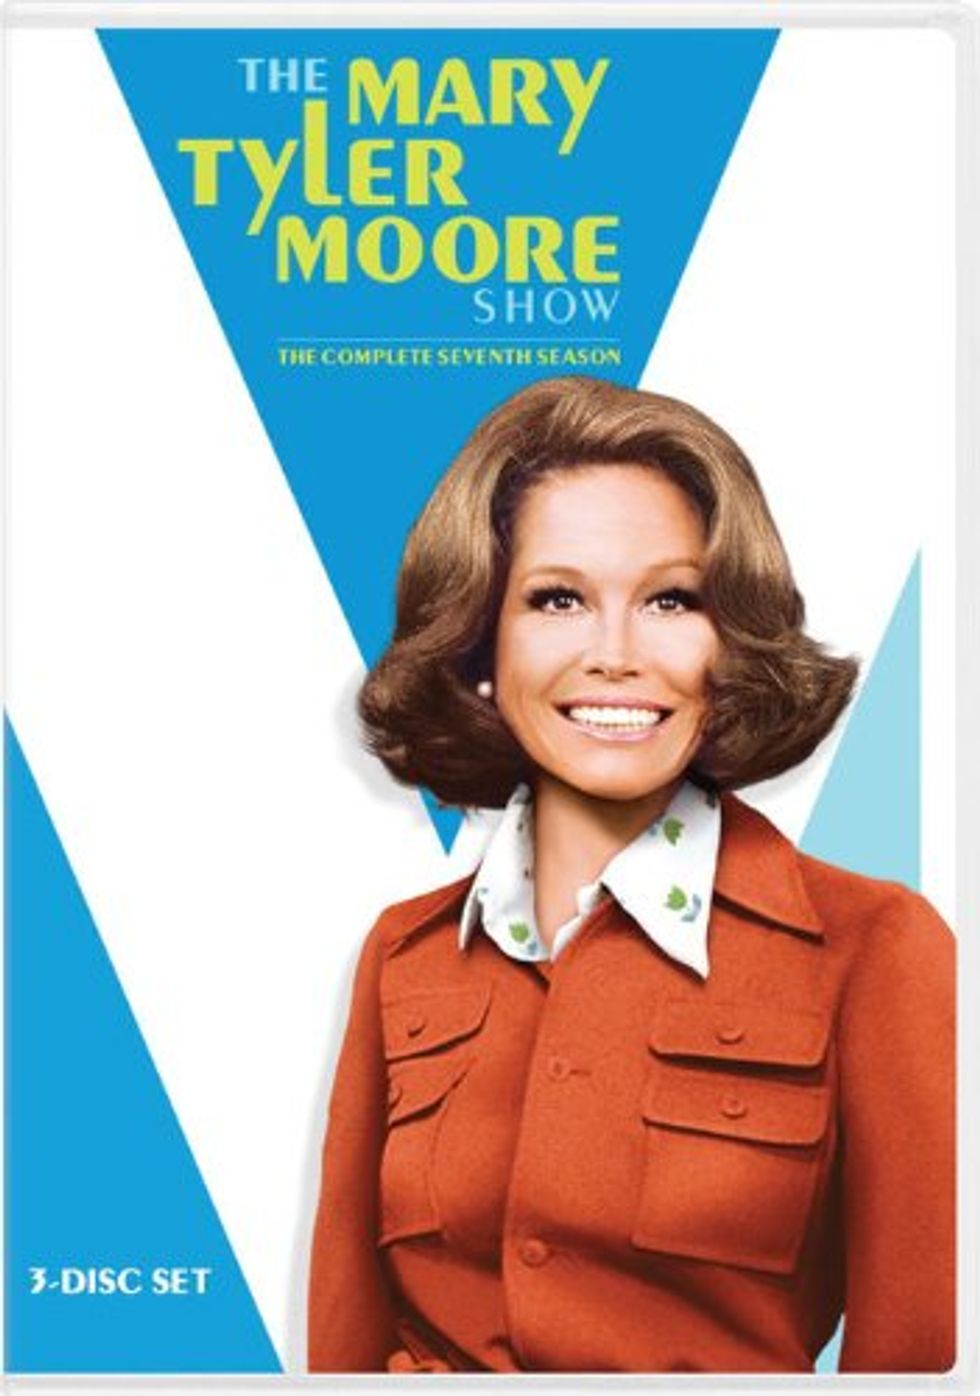 The Mary Tyler Moore Show: The Complete Seventh Season On DVD